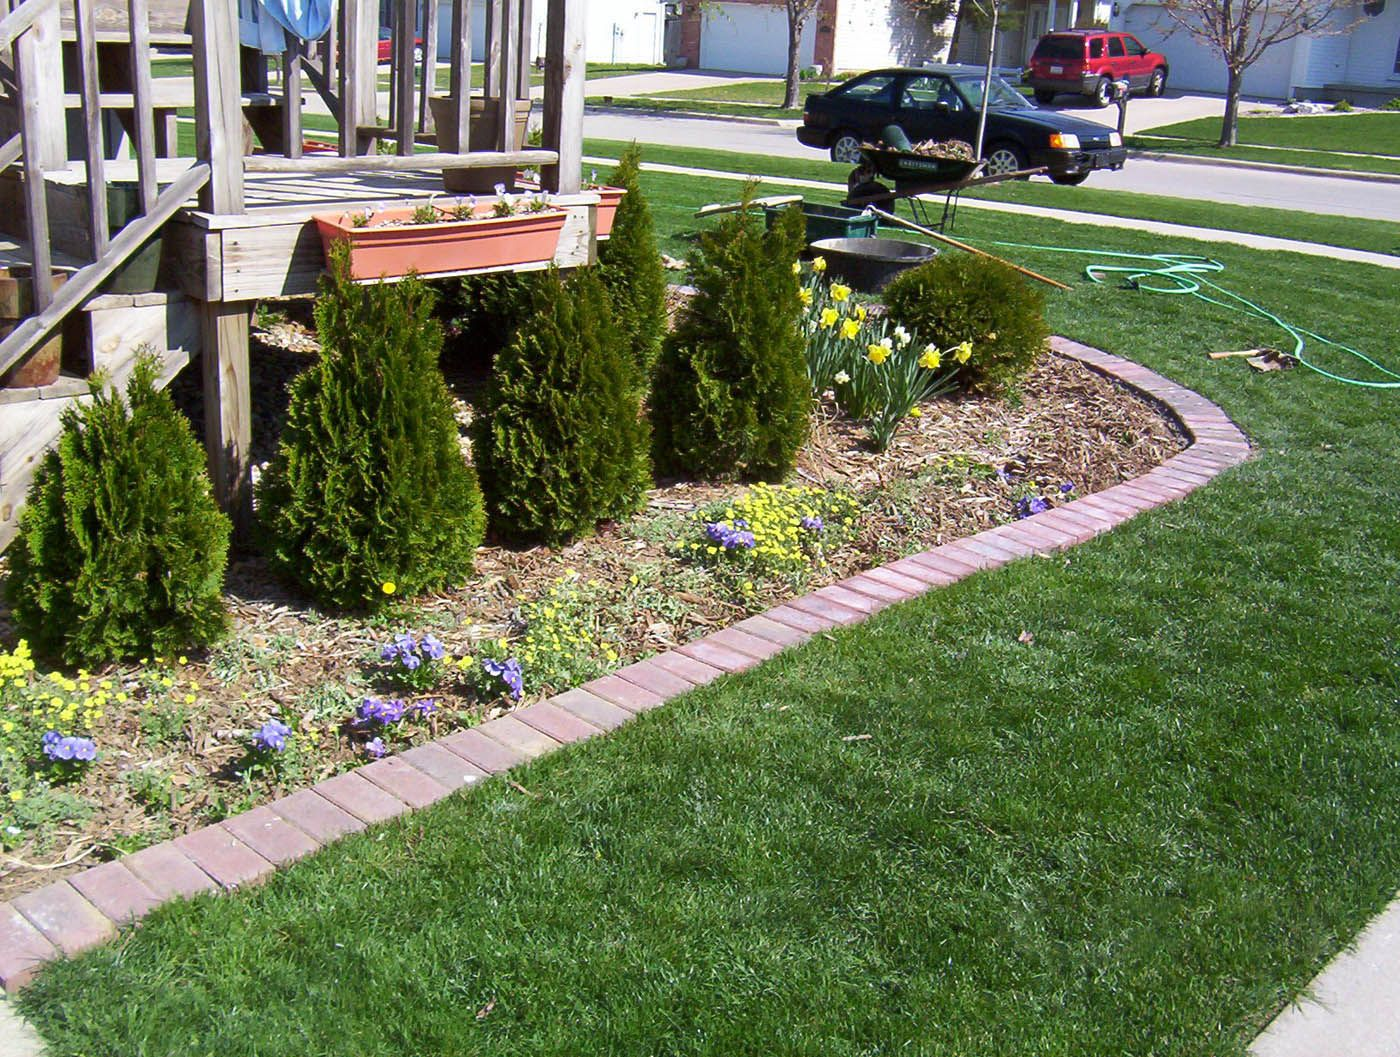 Simple flower bed edging design ideas lawn care for Lawn and garden landscaping ideas